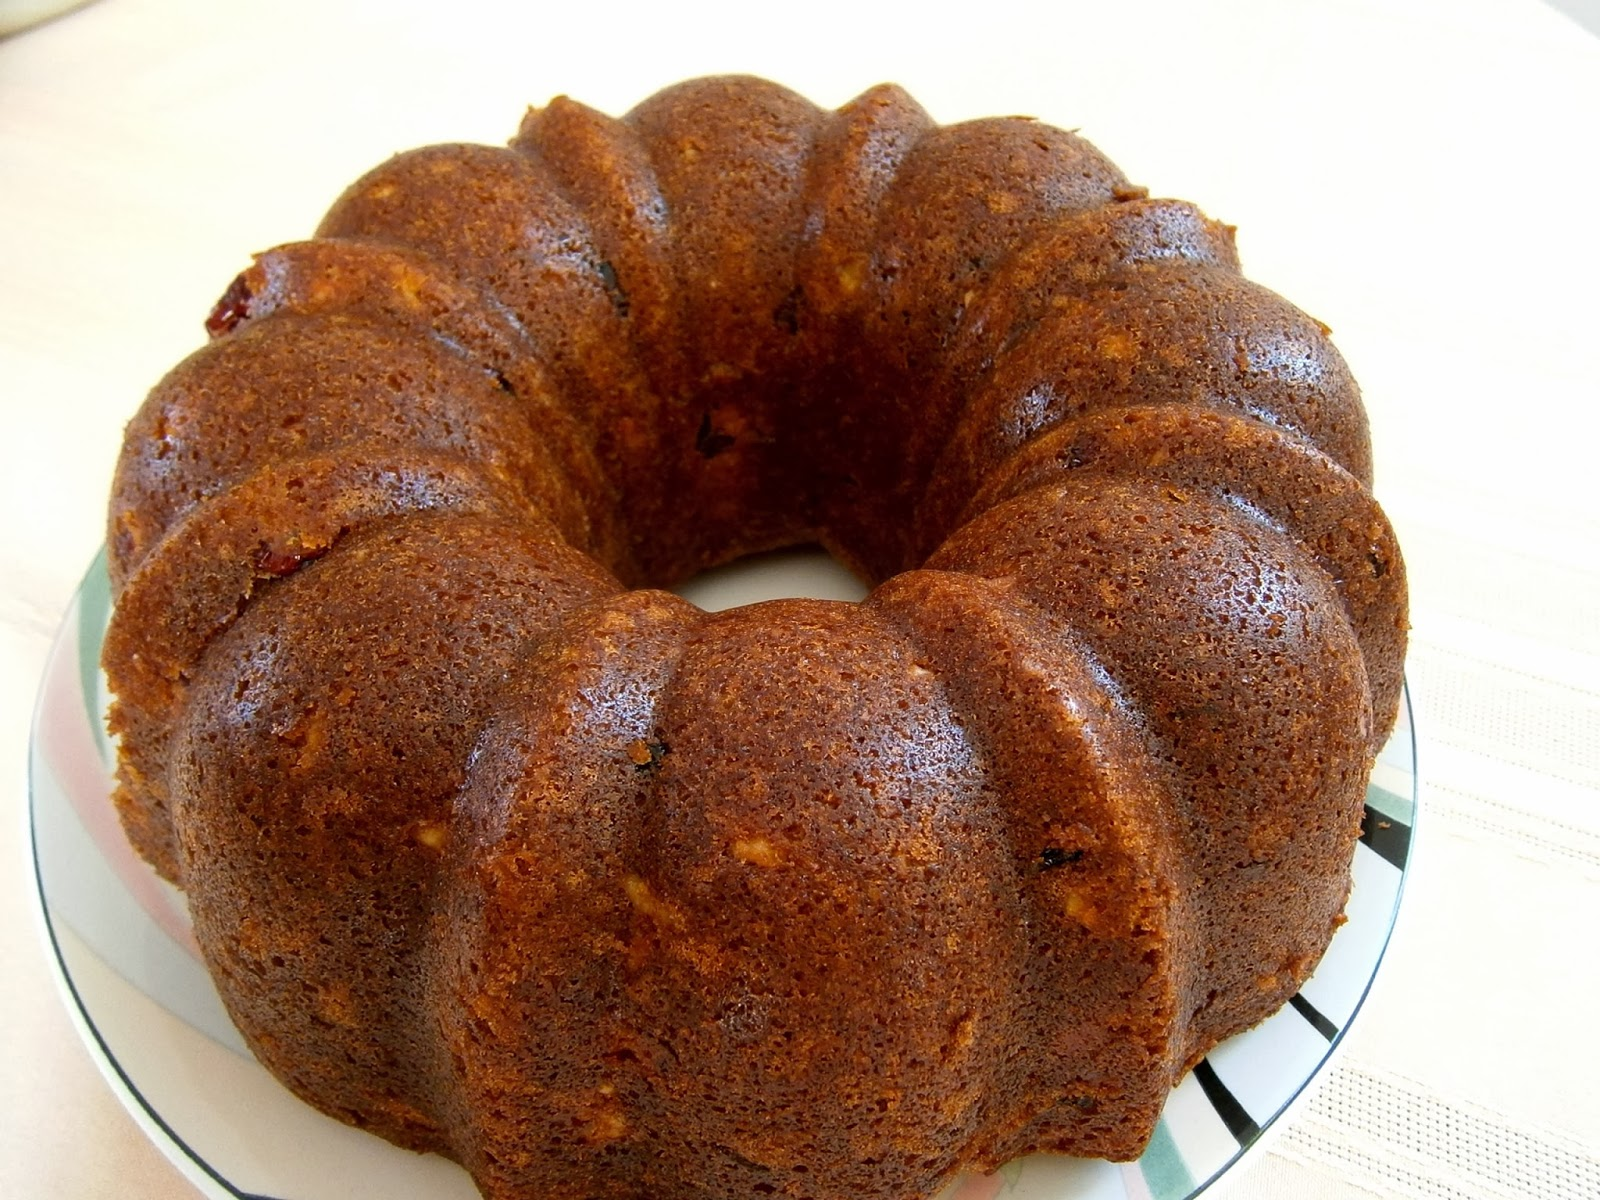 SucreSuKo: The Best Cranberry Orange Bundt Cake